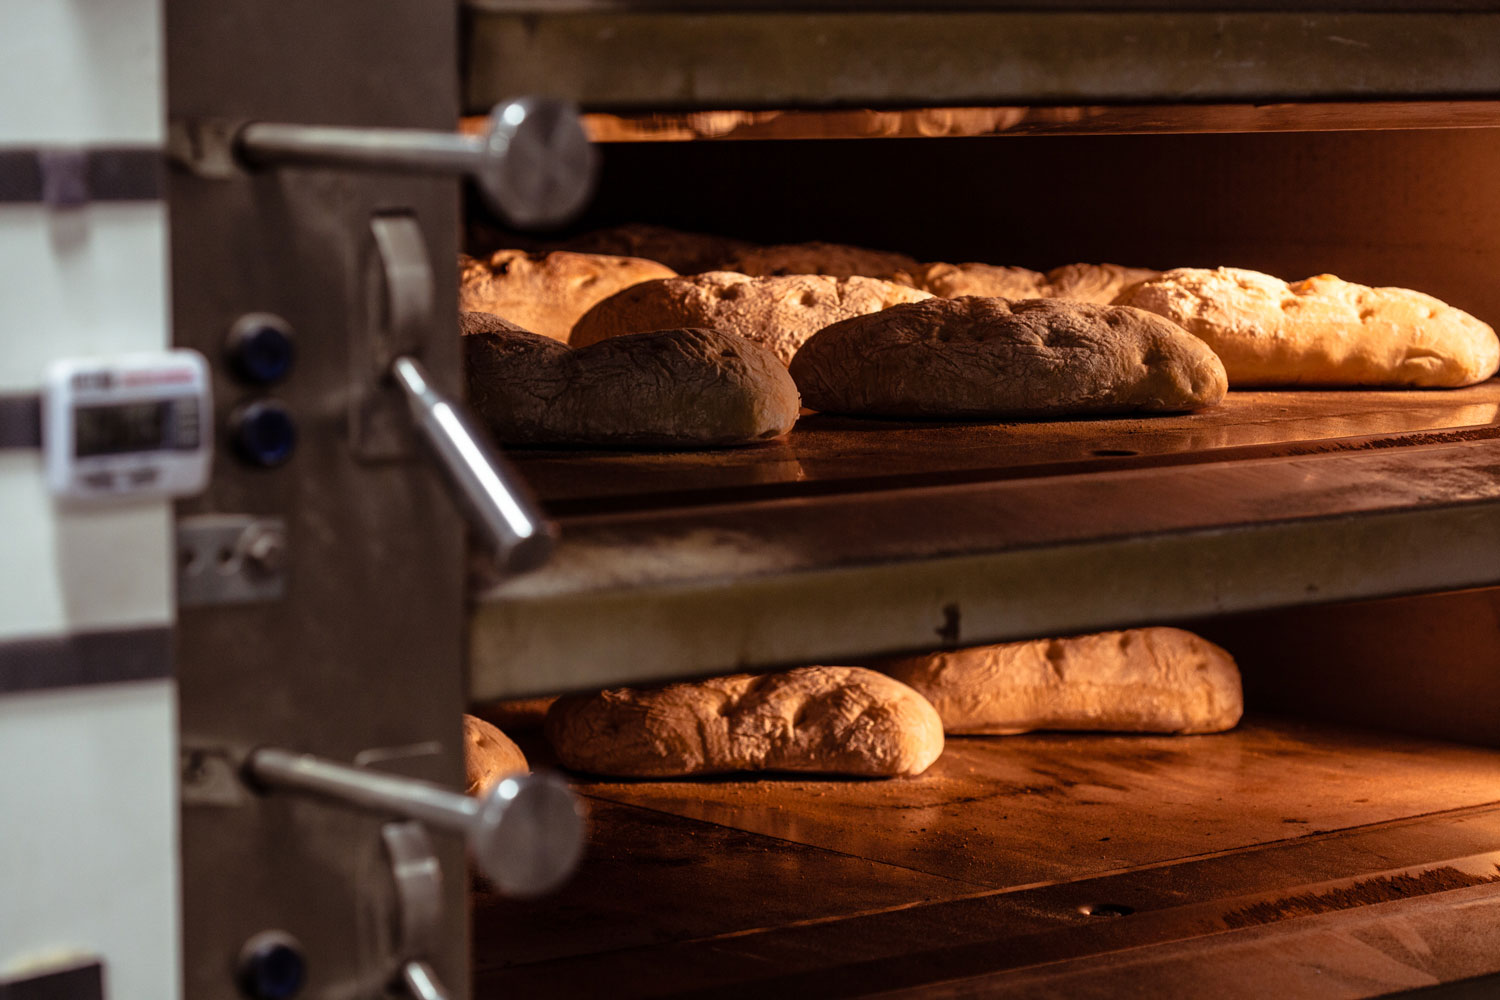 Exclusive Buying Tips on Getting Yourself the Right Kind of Bakeware